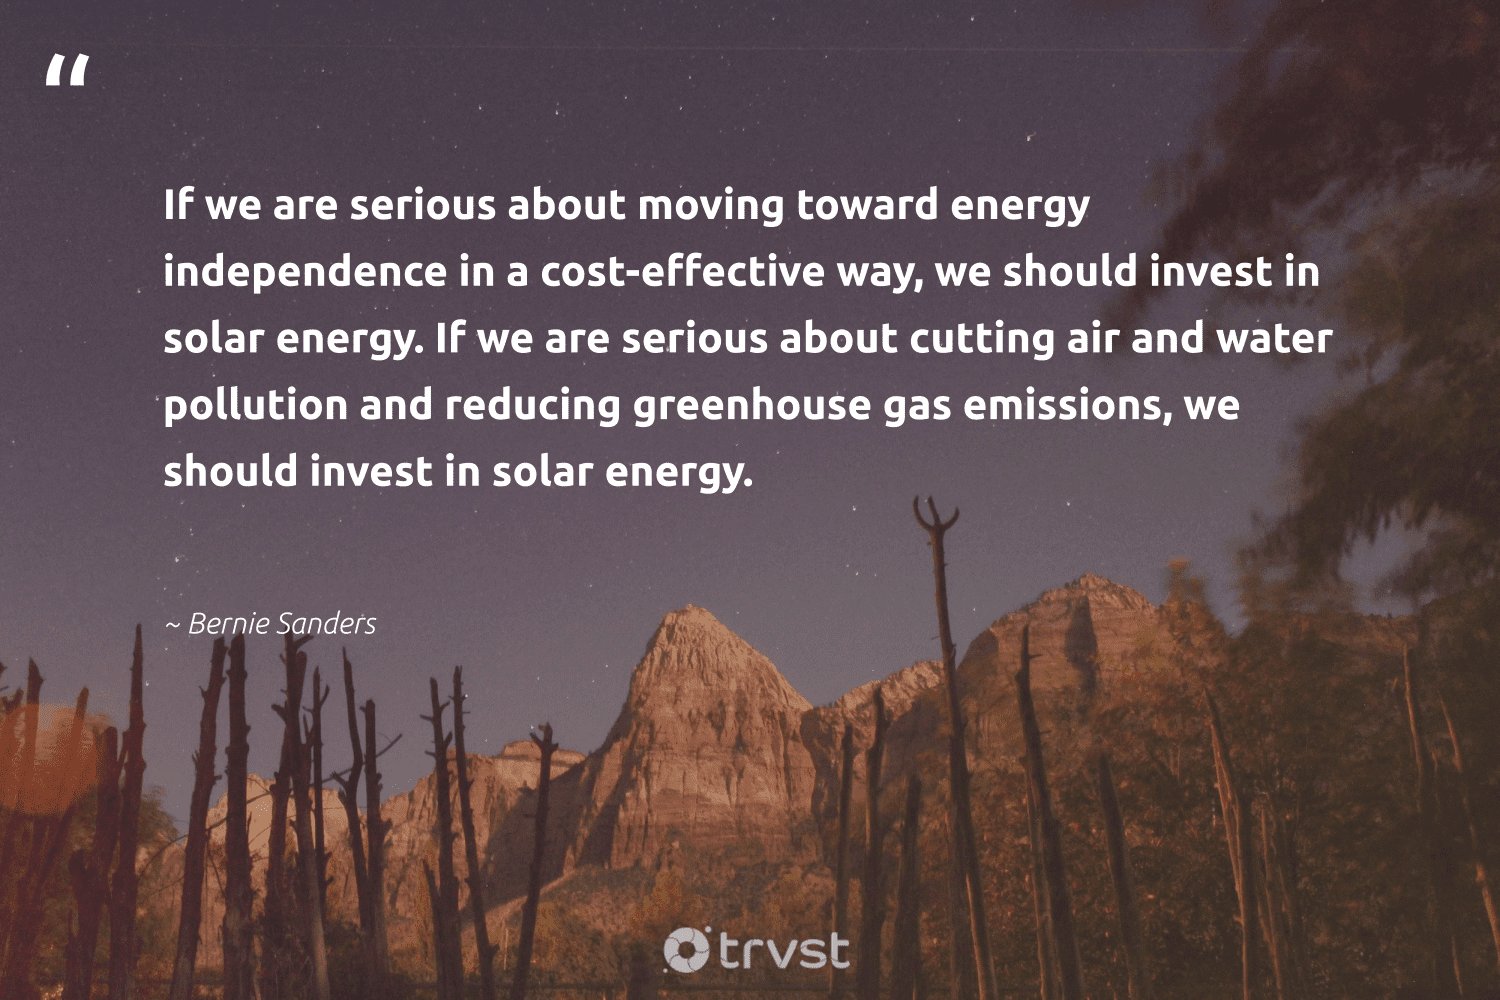 """""""If we are serious about moving toward energy independence in a cost-effective way, we should invest in solar energy. If we are serious about cutting air and water pollution and reducing greenhouse gas emissions, we should invest in solar energy.""""  - Bernie Sanders #trvst #quotes #solar #energy #solarenergy #gas #water #pollution #solarpower #solarpv #nature #climatechange"""